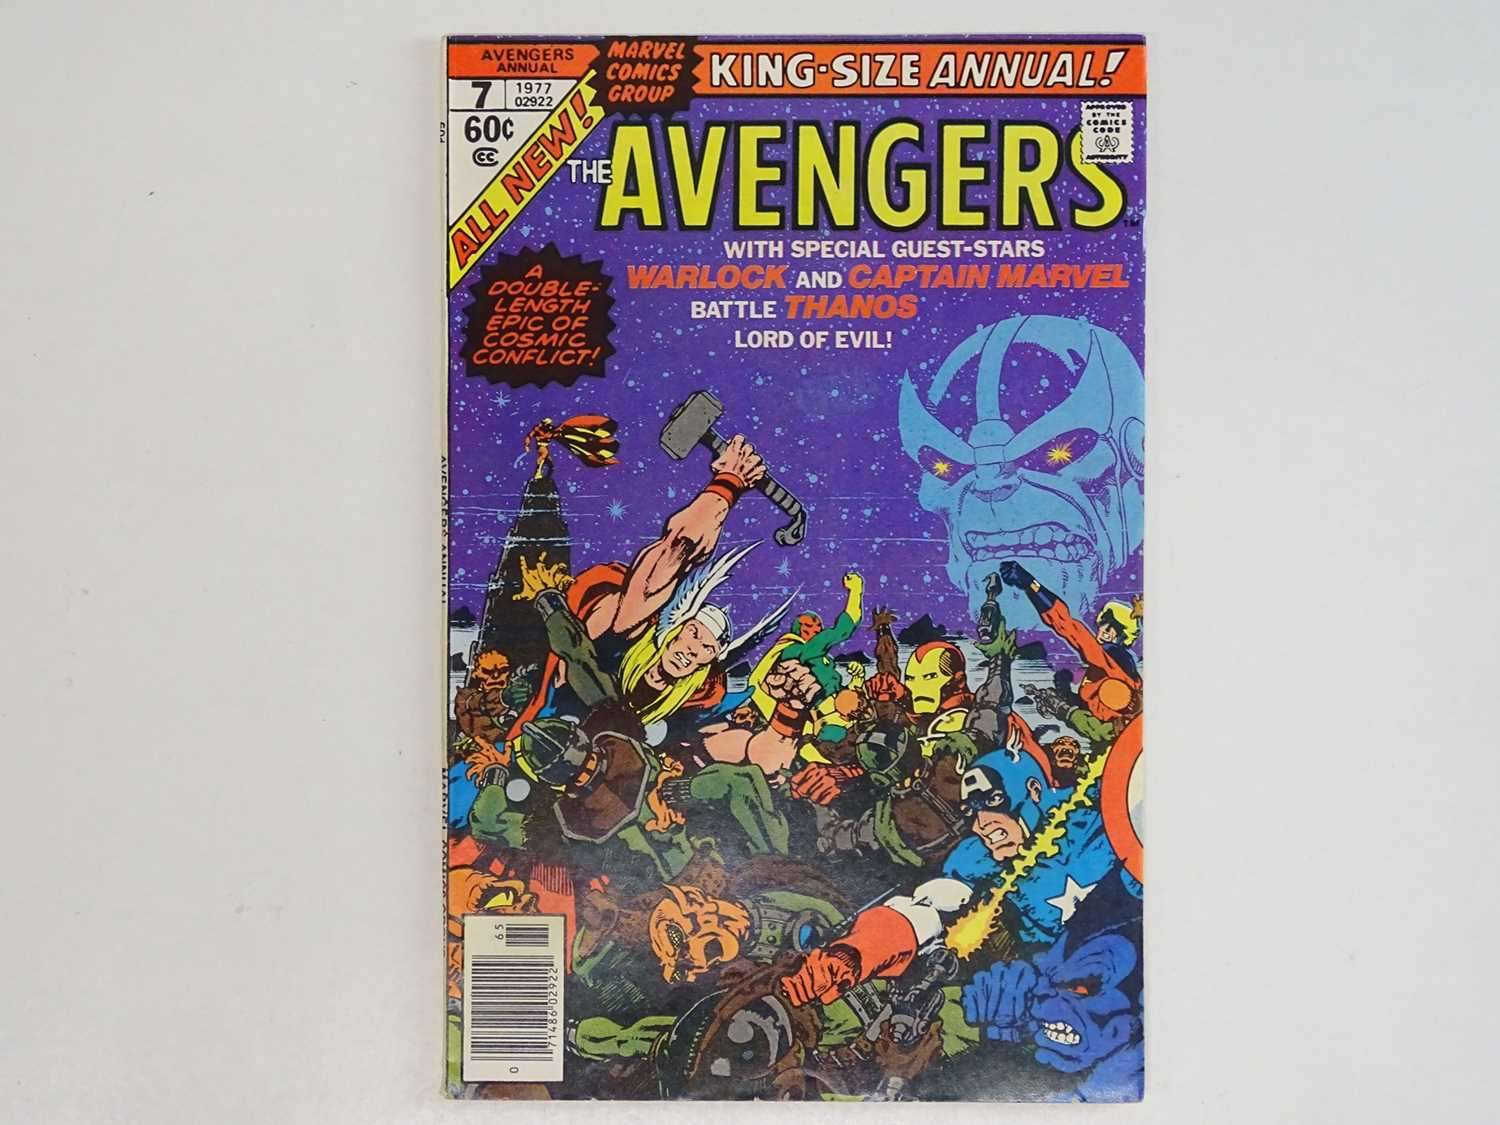 """AVENGERS KING-SIZE ANNUAL #7 - (1977 - MARVEL) - Includes """"Death"""" of Adam Warlock + Thanos,"""